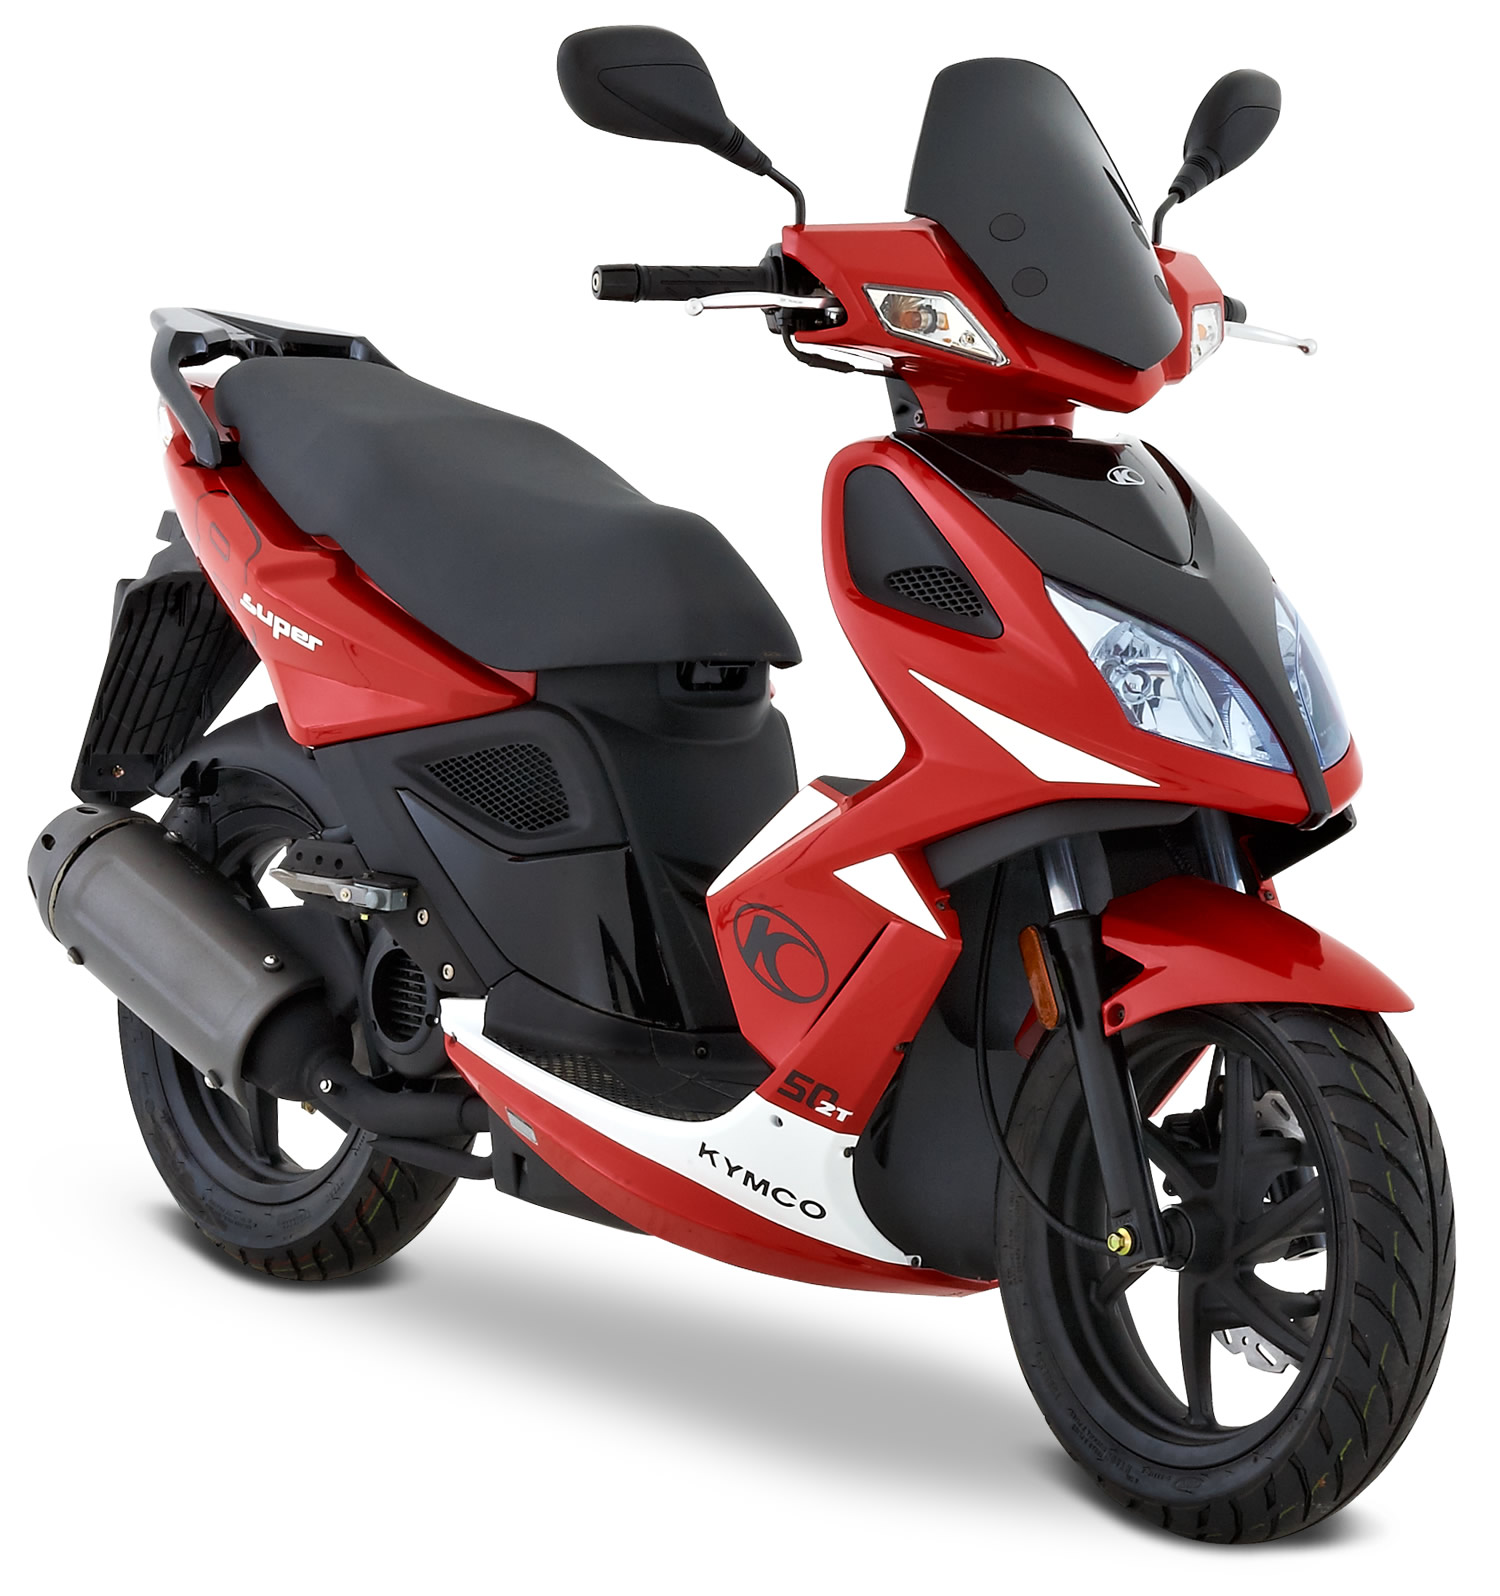 Kymco Yup 50 images #101492